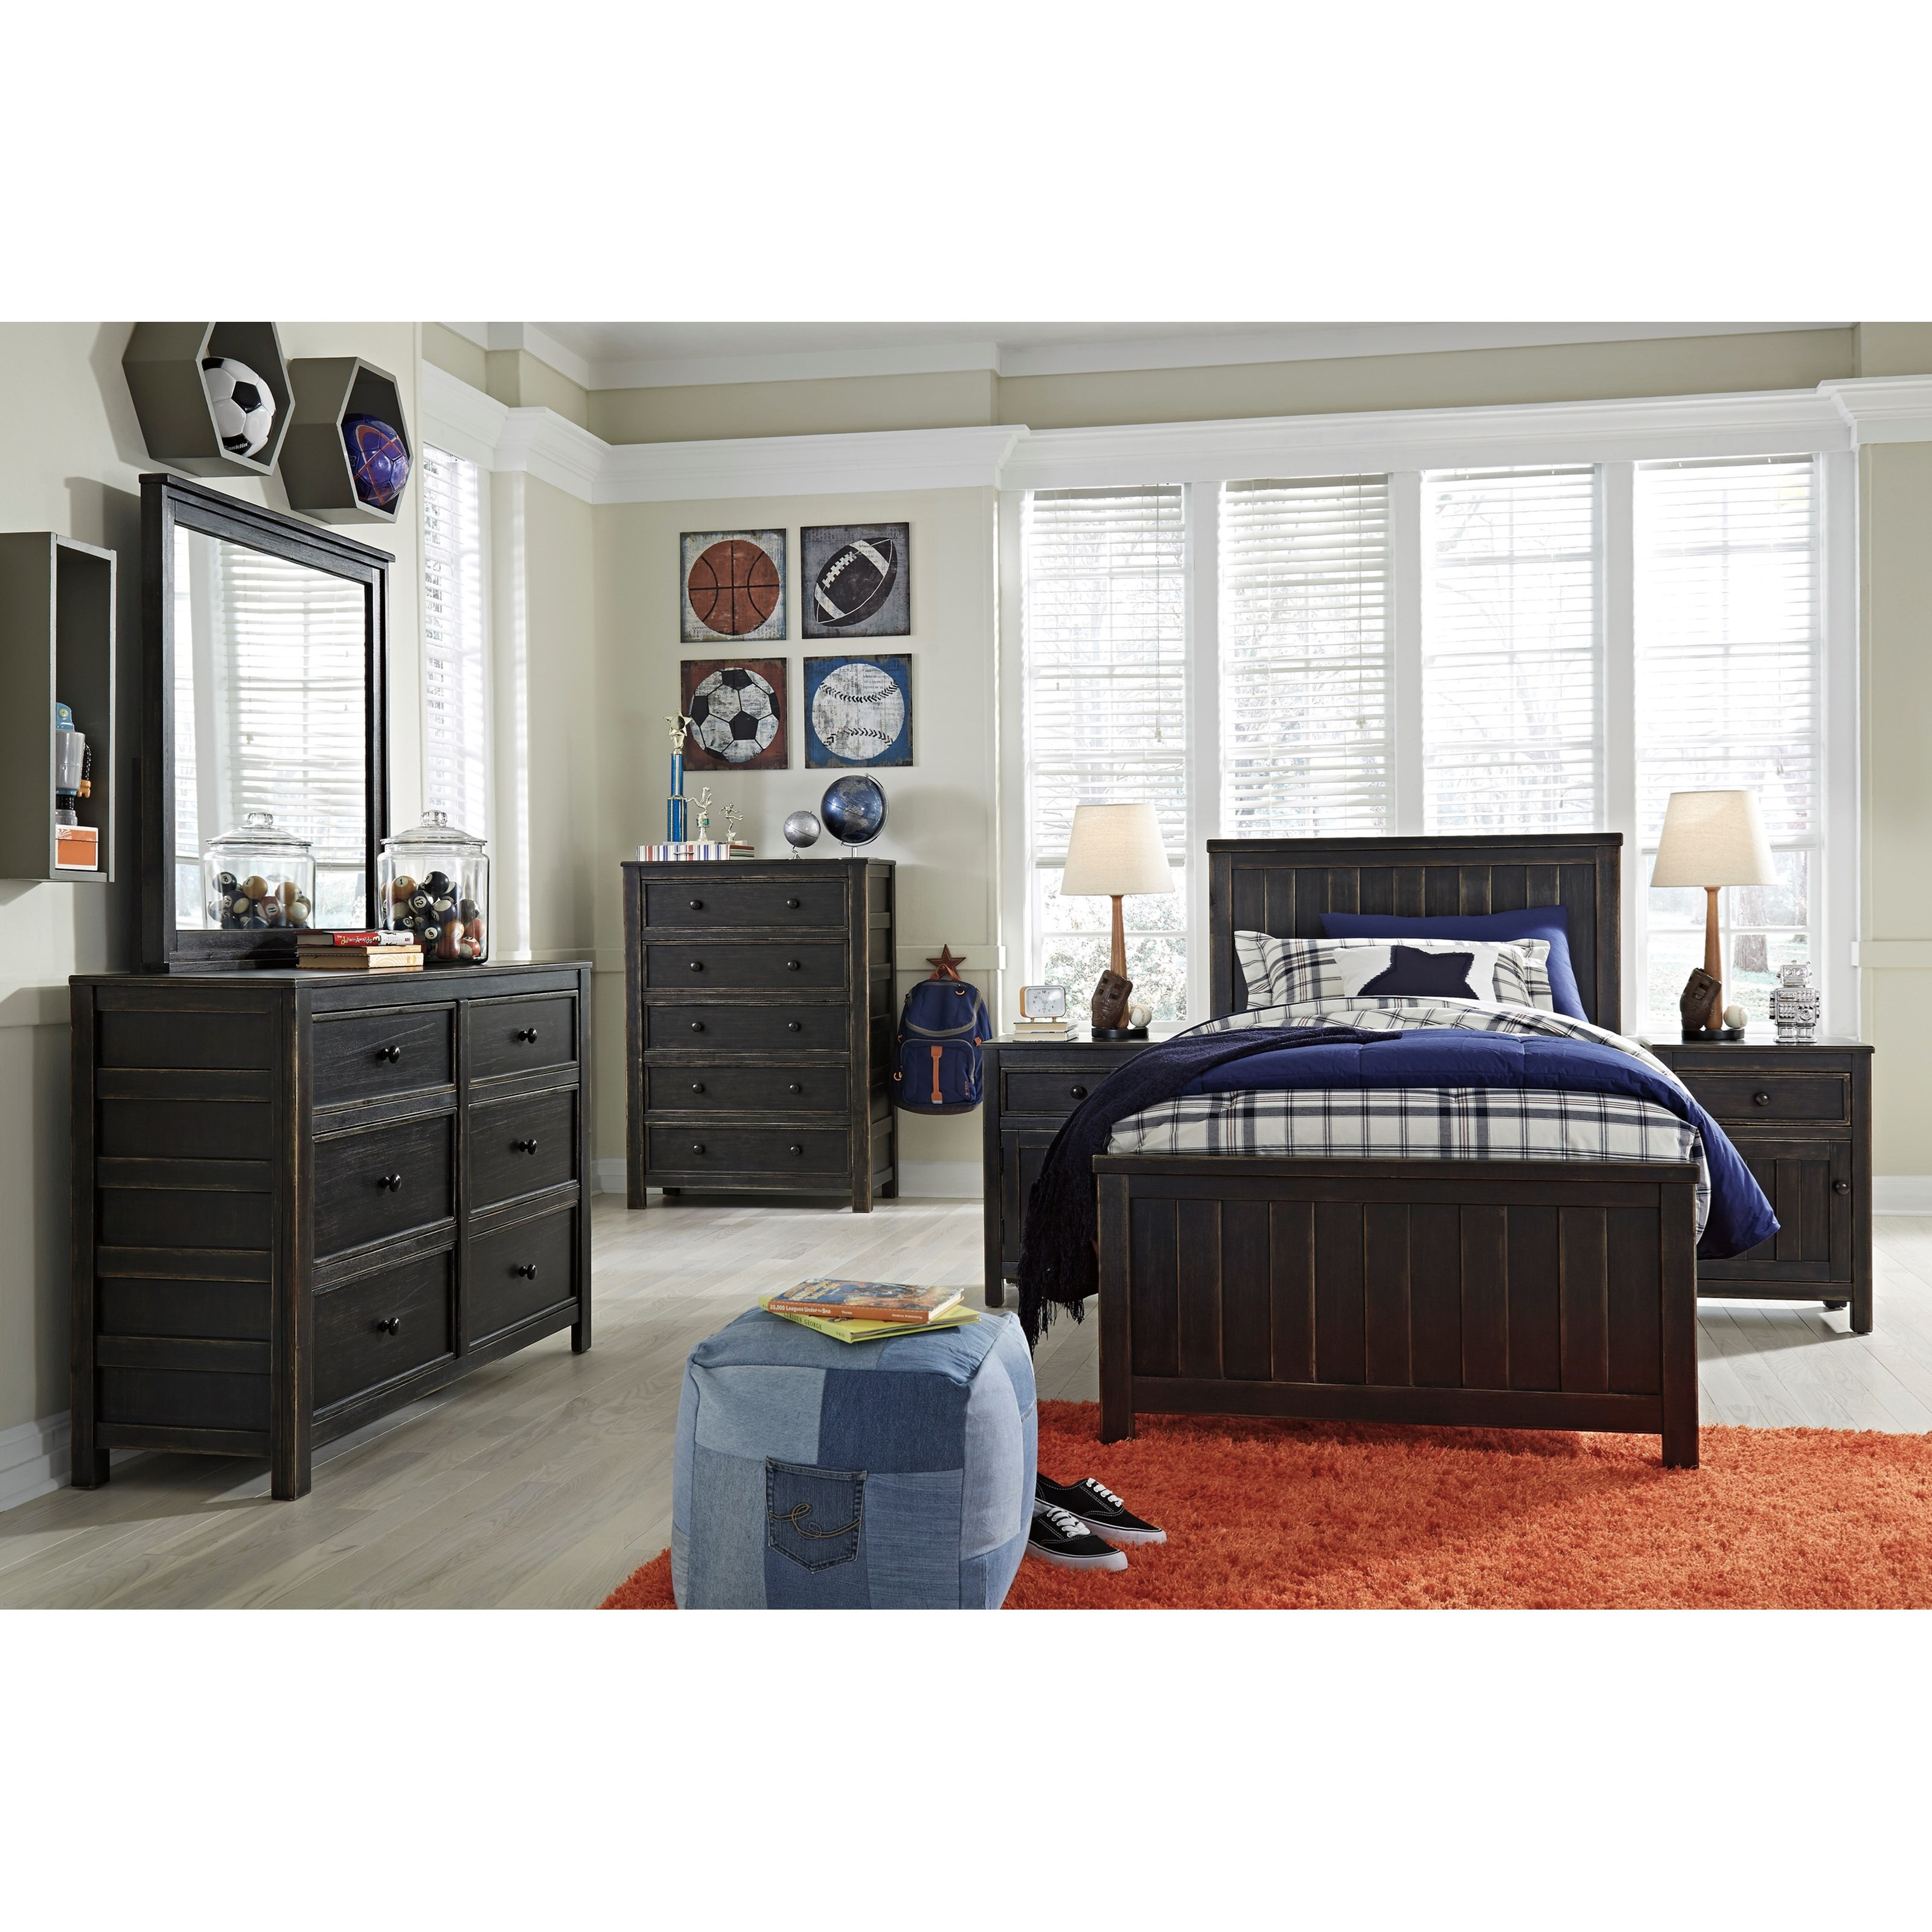 Twin Panel Bed in Rub Through Black Finish by Signature